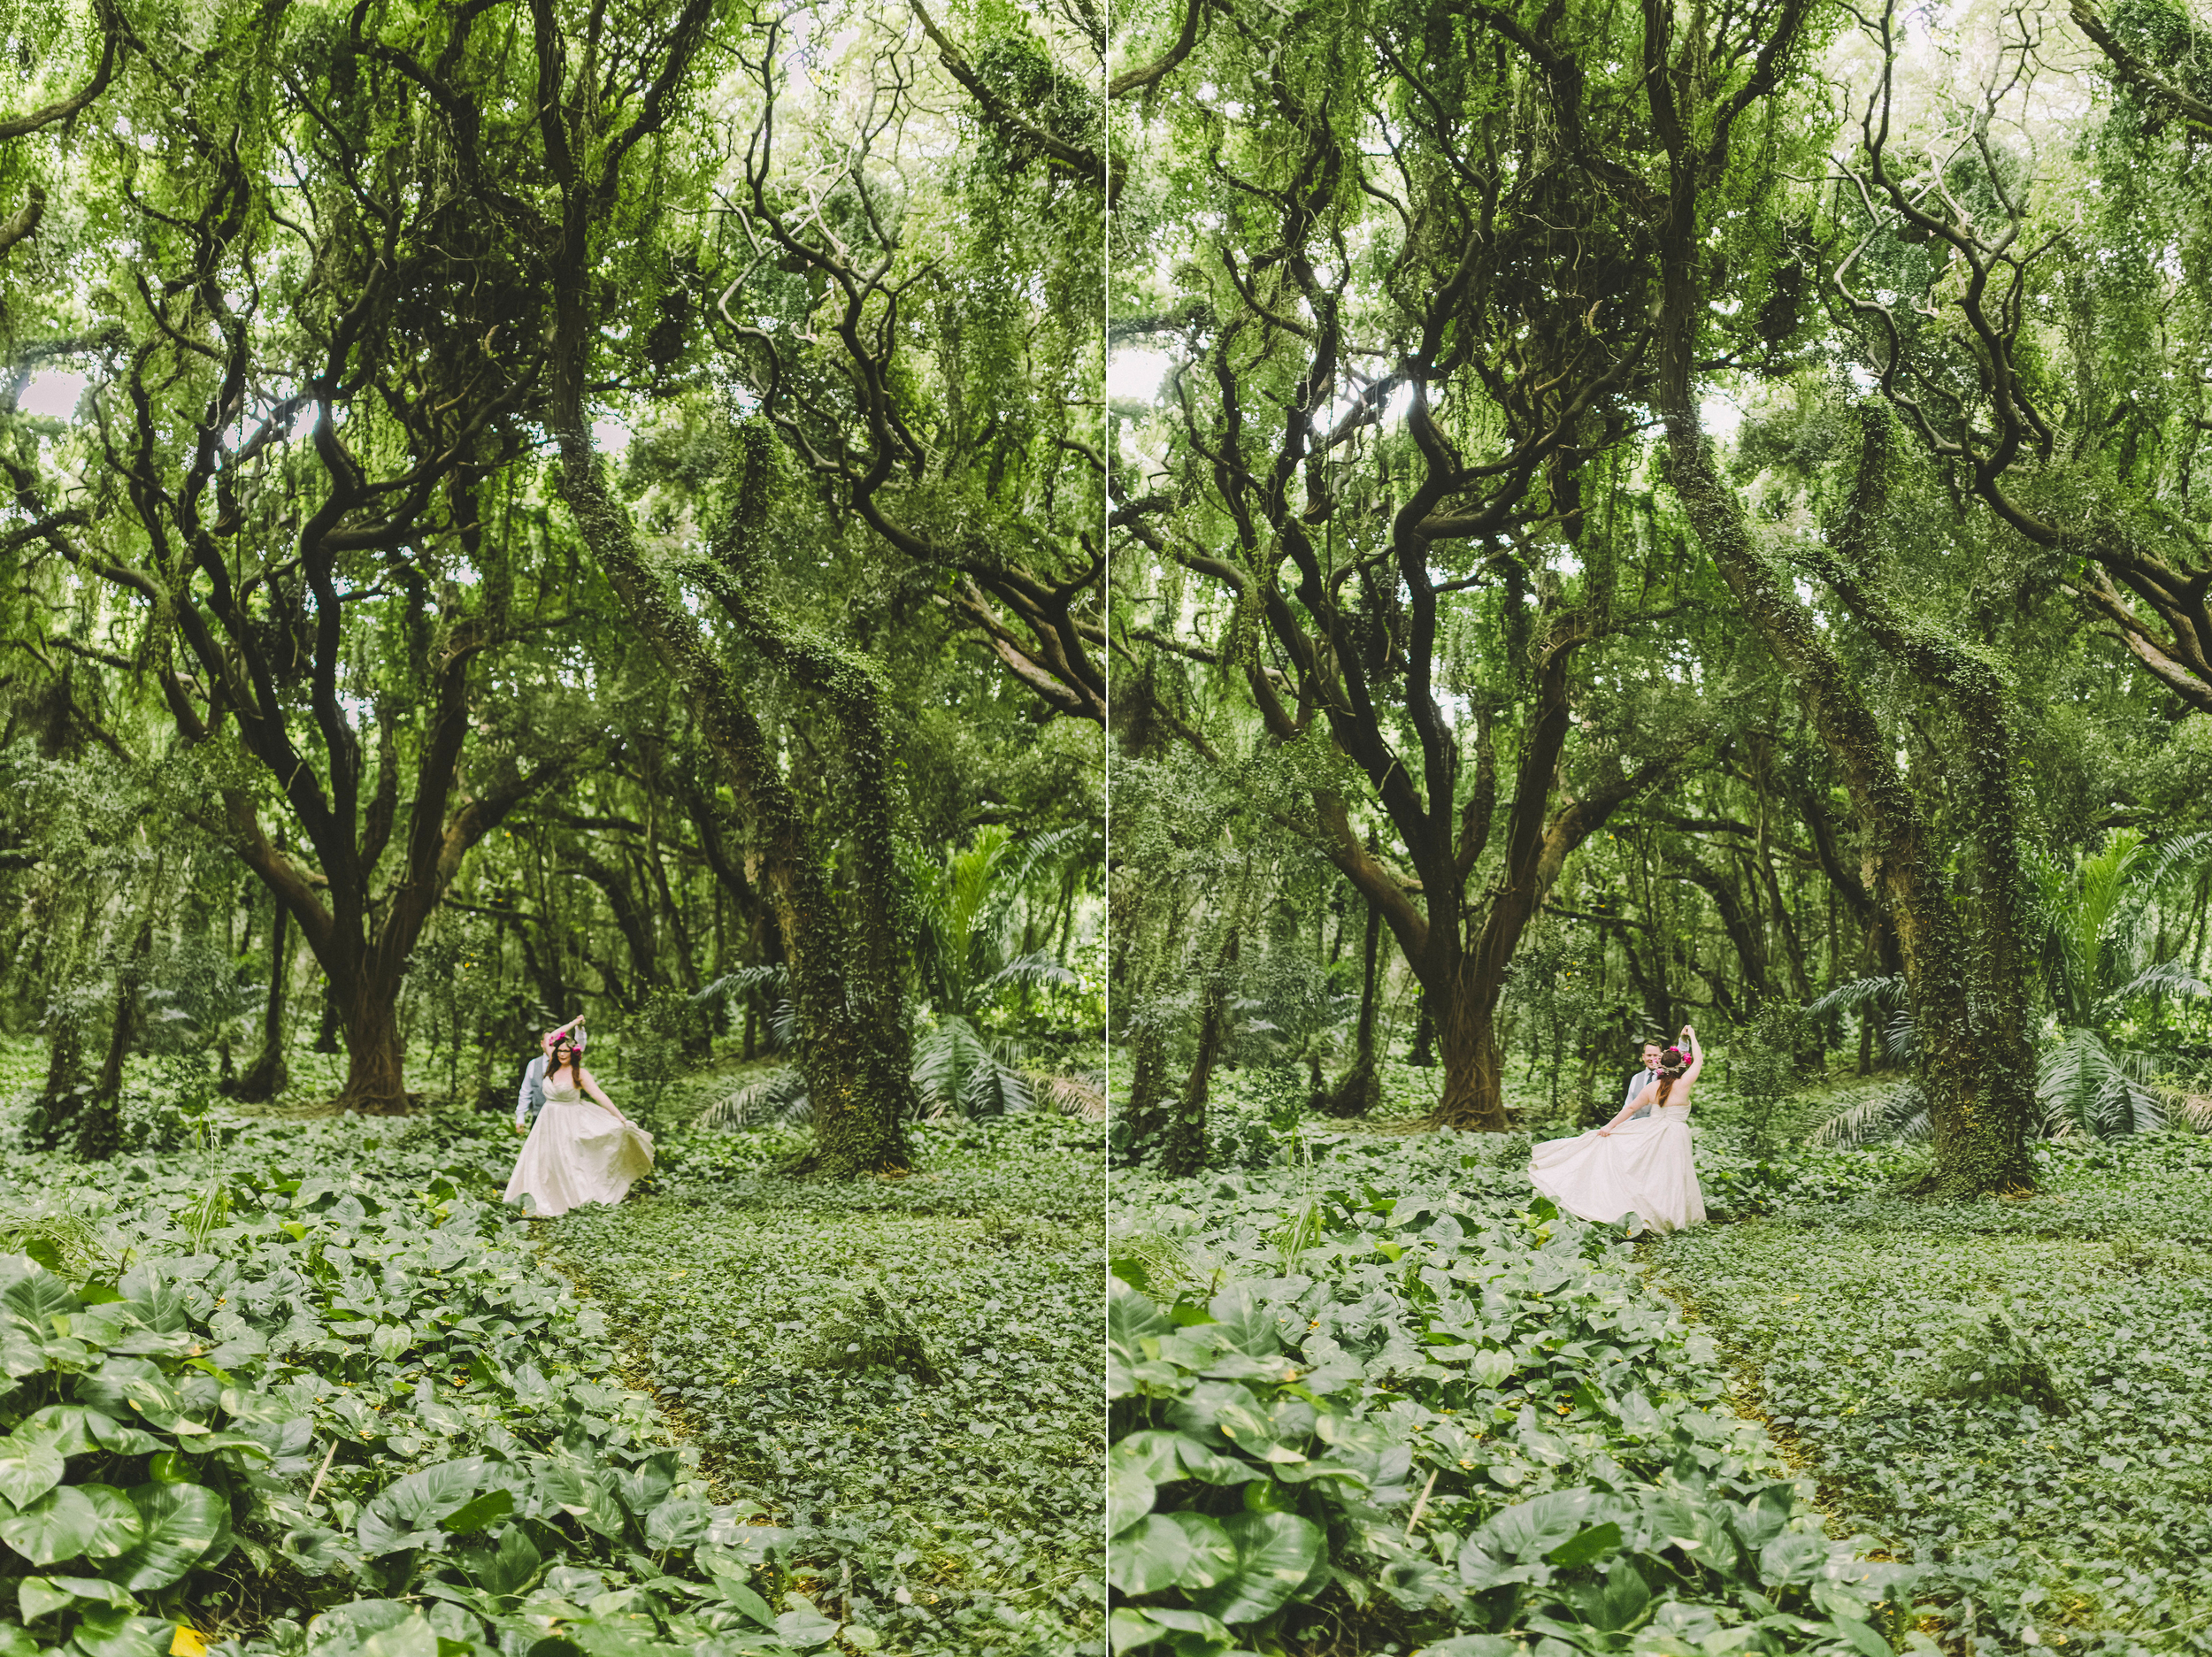 angie-diaz-photography-maui-elopement-92.jpg